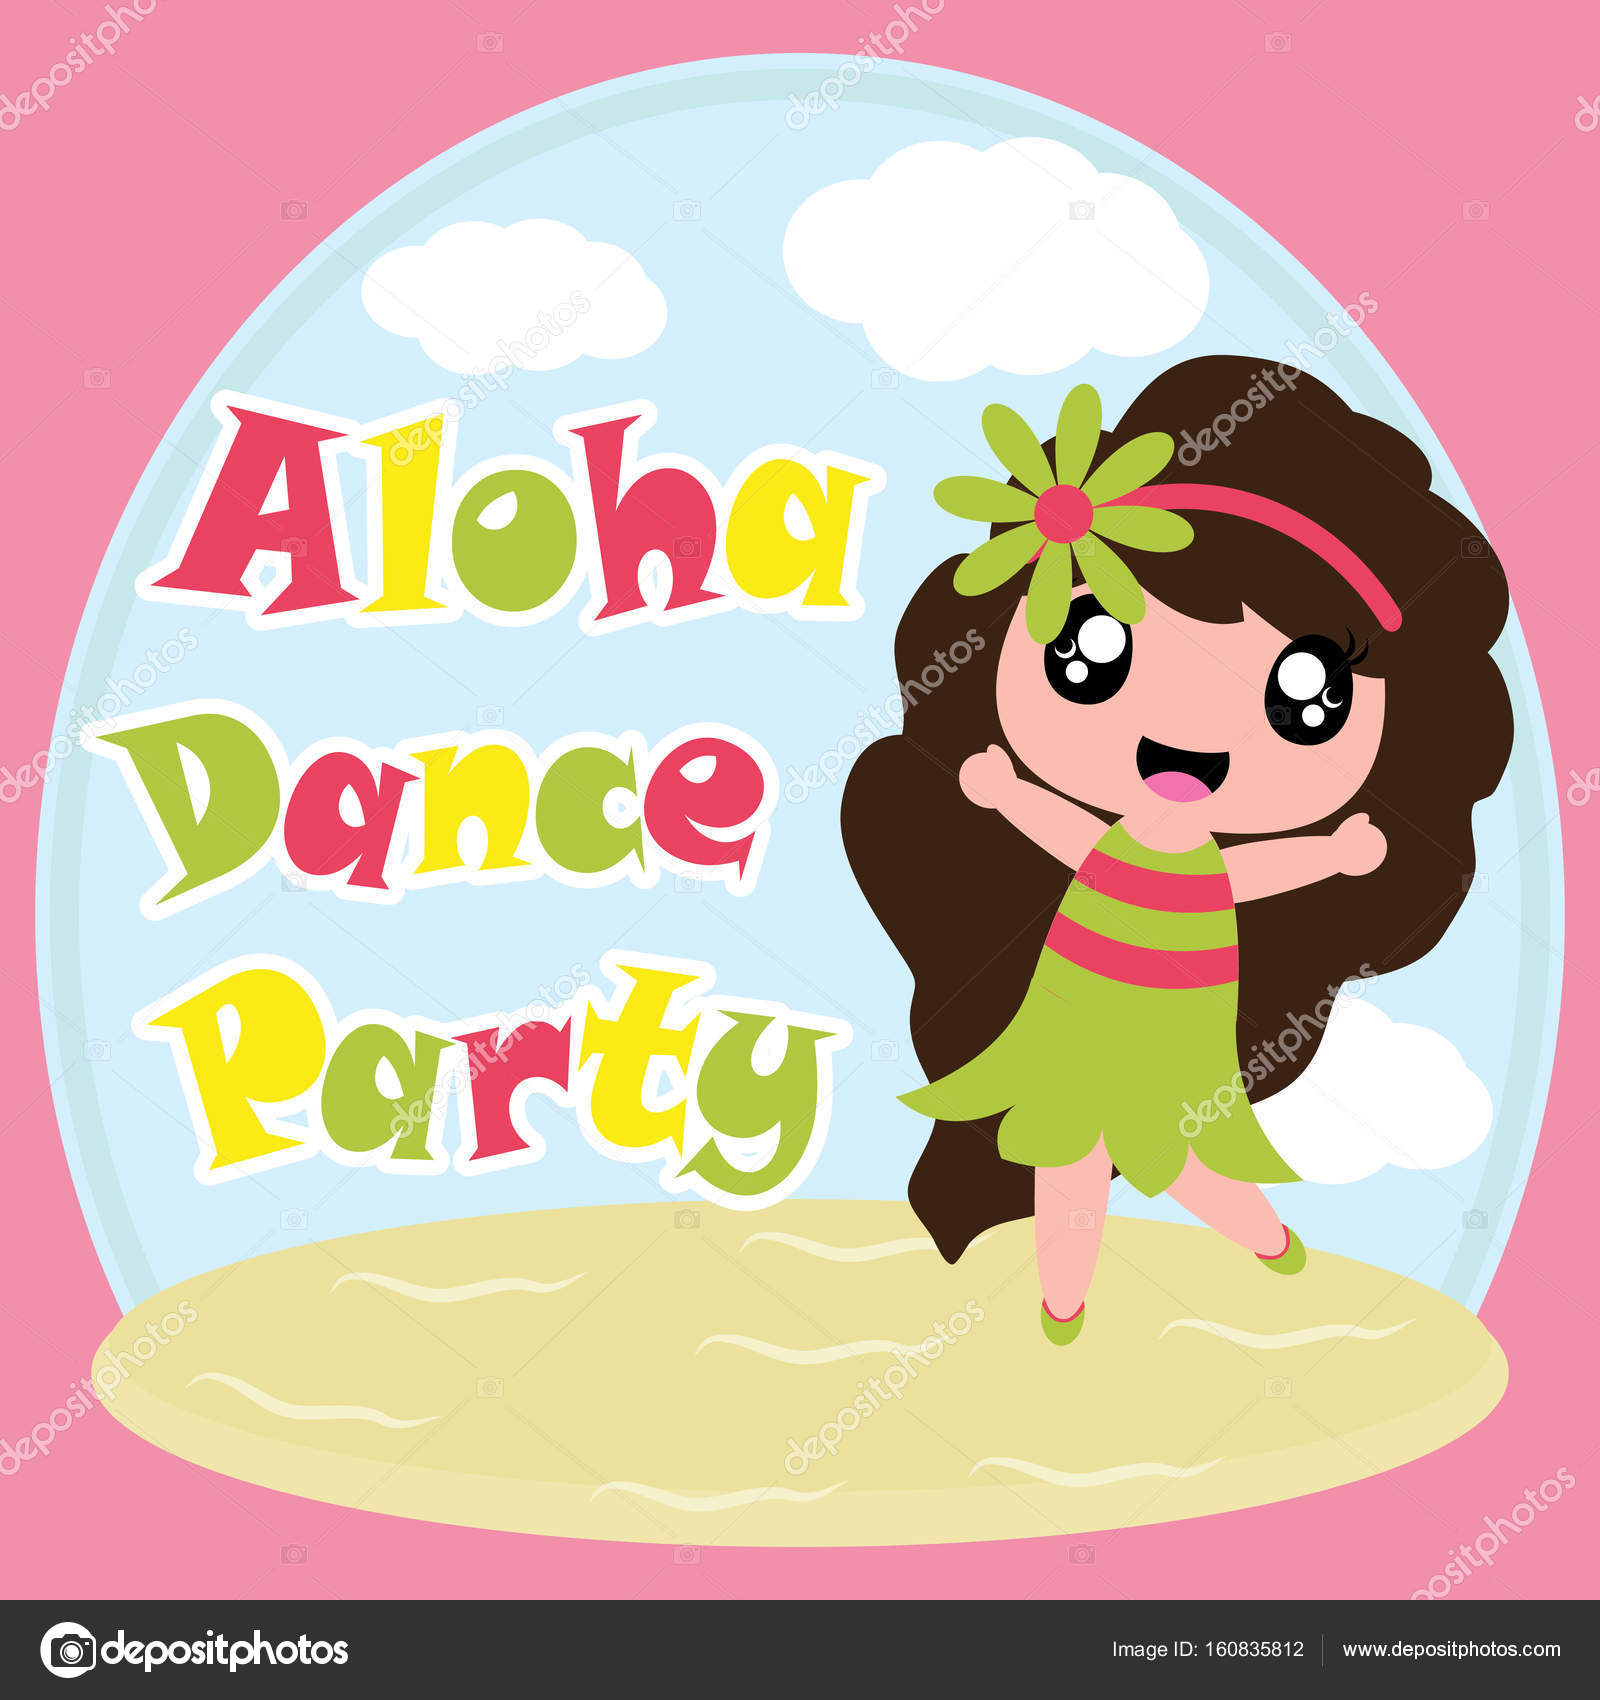 Cute Girl Wallpaper Cartoon Cute Girl Is Happy In Aloha Dance Party Vector Cartoon On Beach Background Birthday Postcard Wallpaper And Greeting Card Stock Vector C Mommy05 160835812